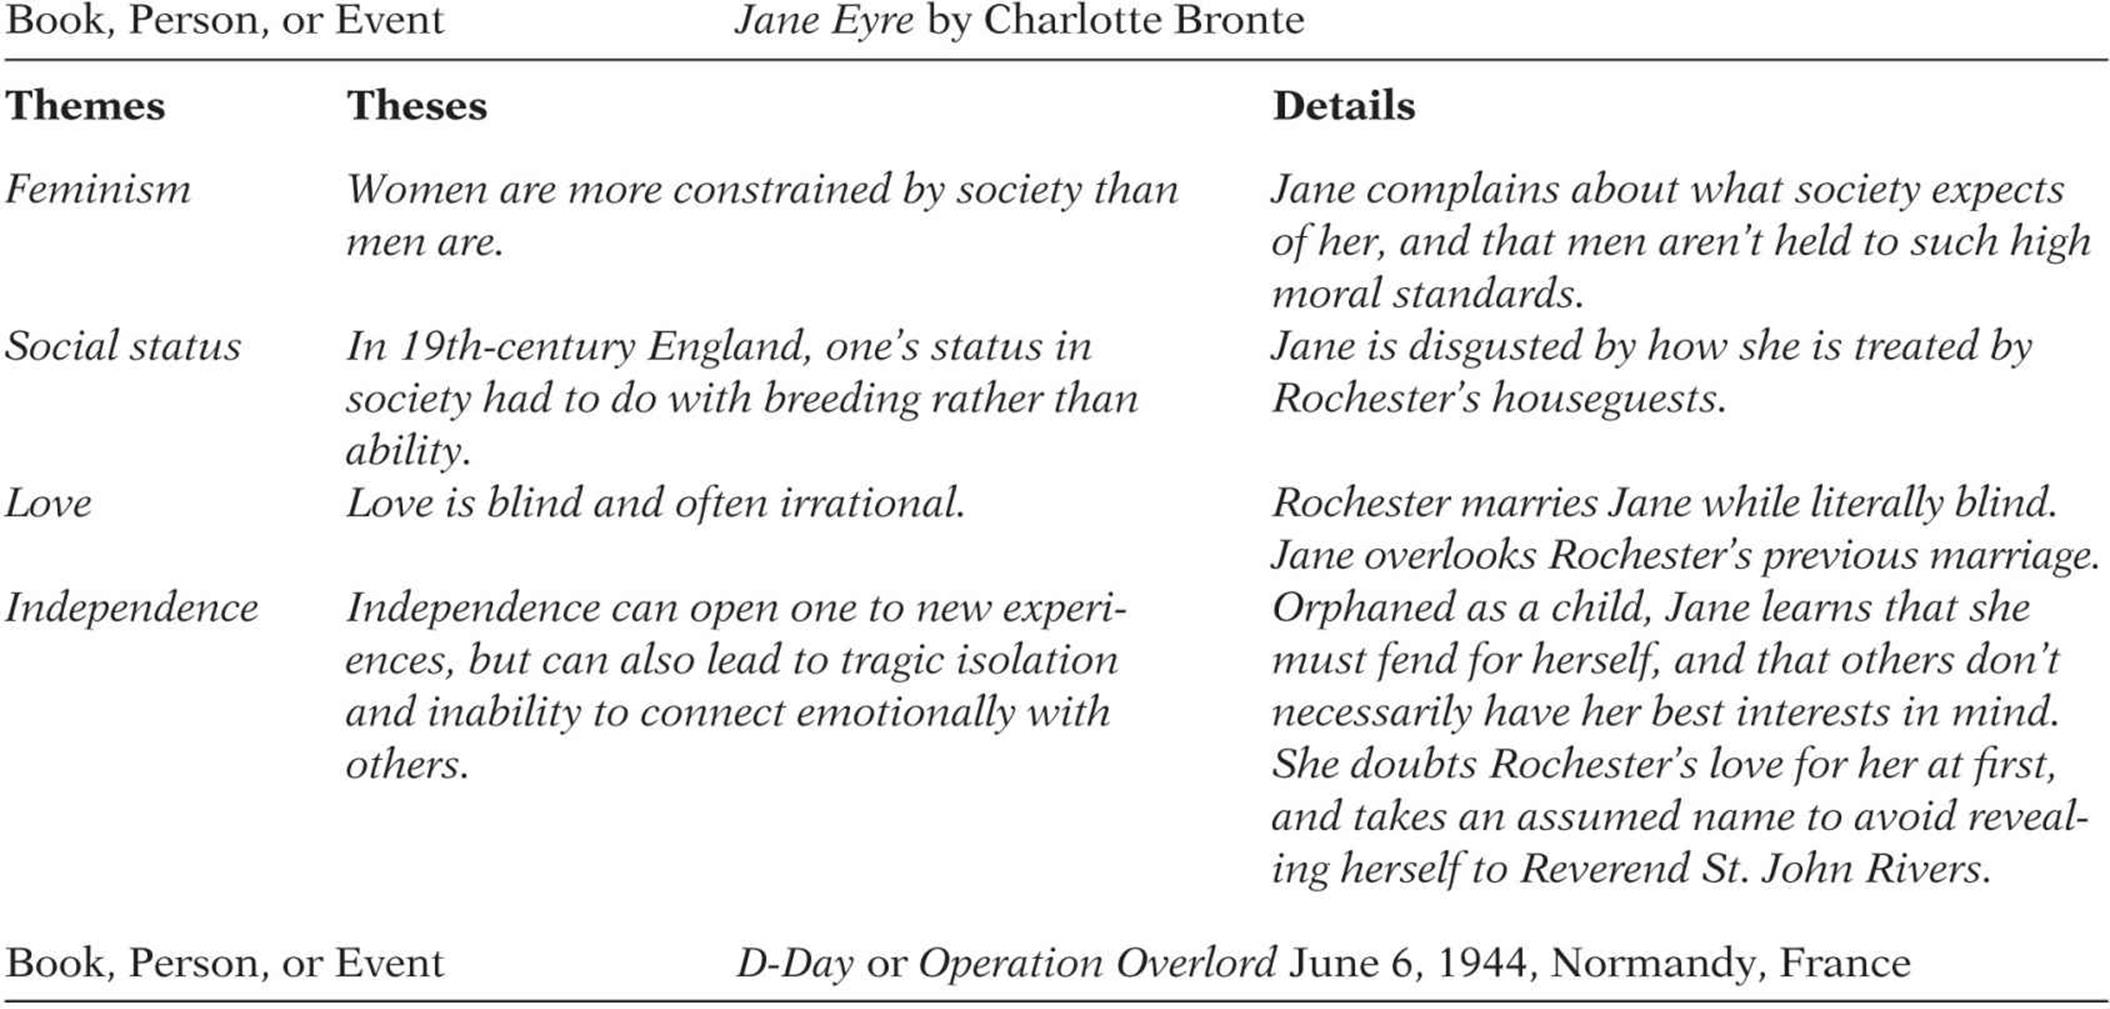 essays on jane eyre and feminism Jane eyre was written in a time where the bildungsroman was a common form of literature the importance was that the mid-nineteenth century was, the age in which women were, for the first time, ranked equally with men as writers within a major genre (sussman 1) in many of these novels, the themes.